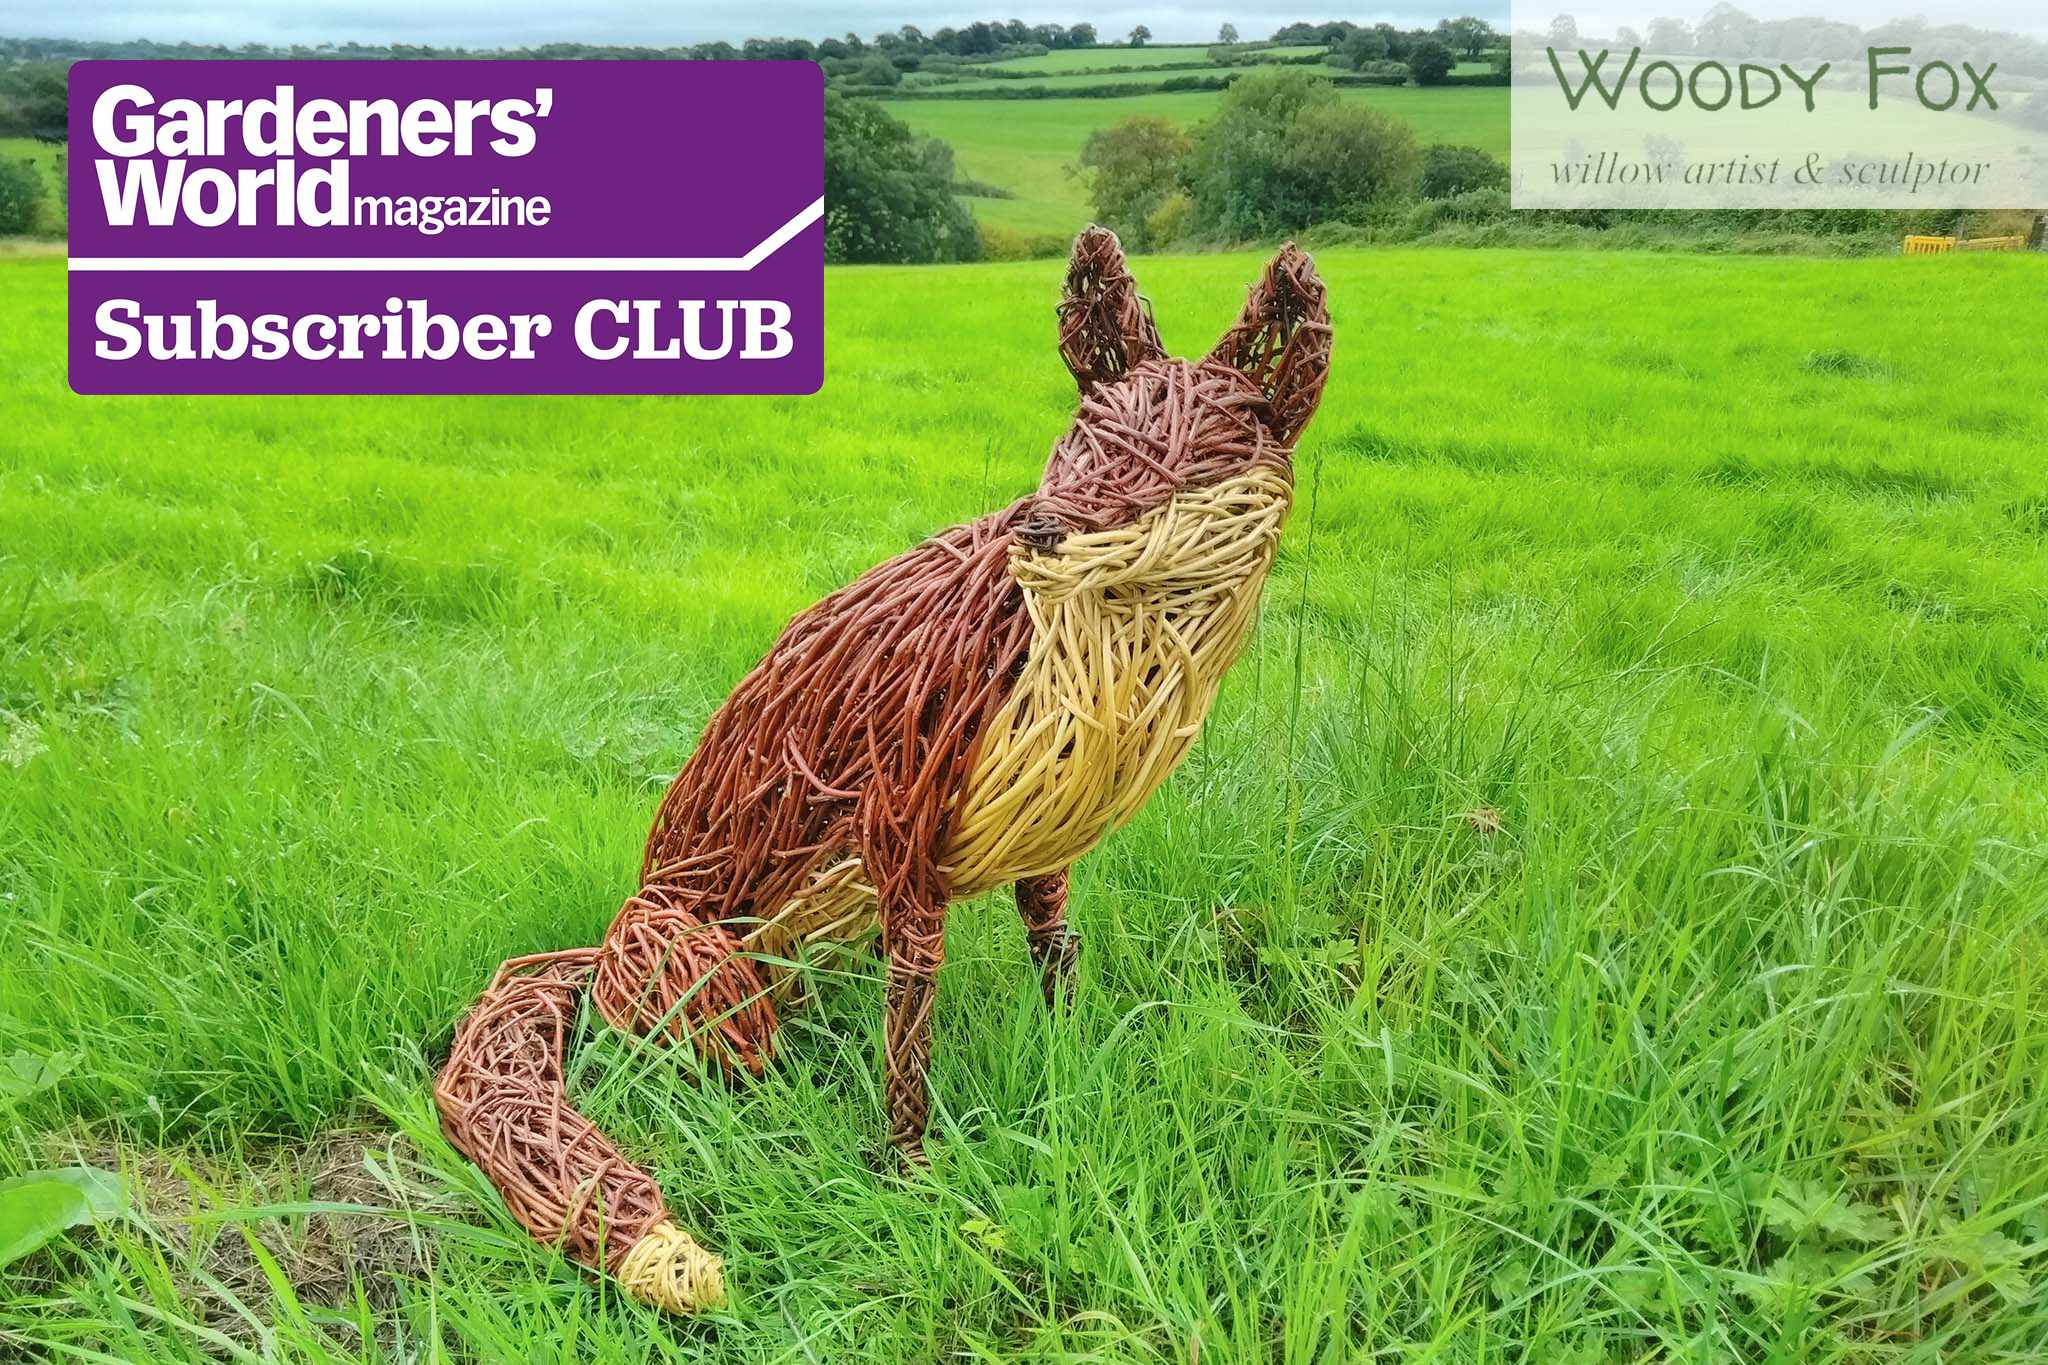 Subscriber Club: Win a willow fox sculpture from Woody Fox Willow, worth £275